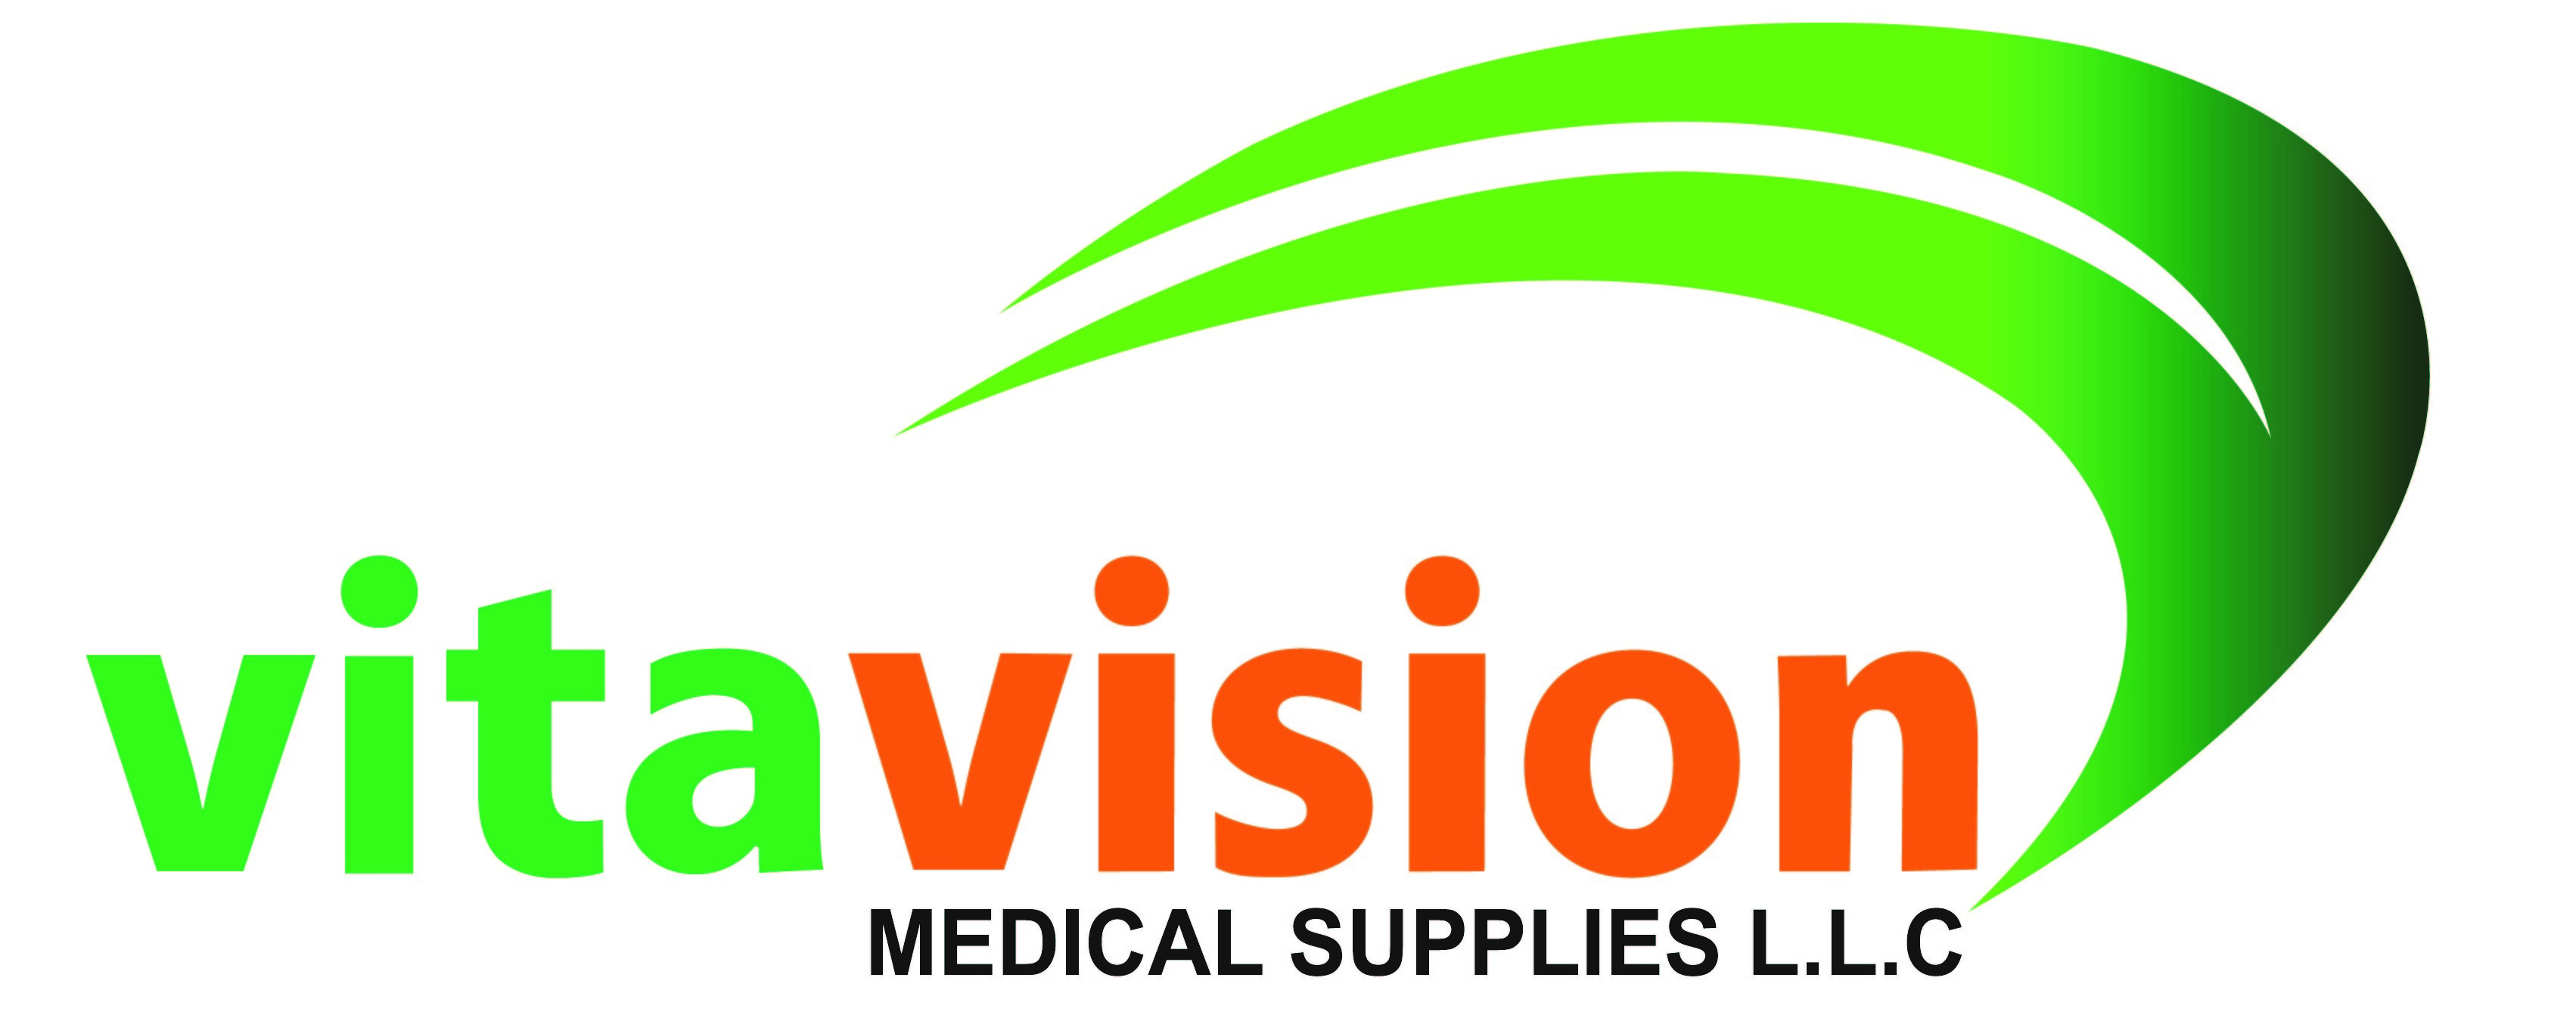 Vitavision Medical Supplies LLC